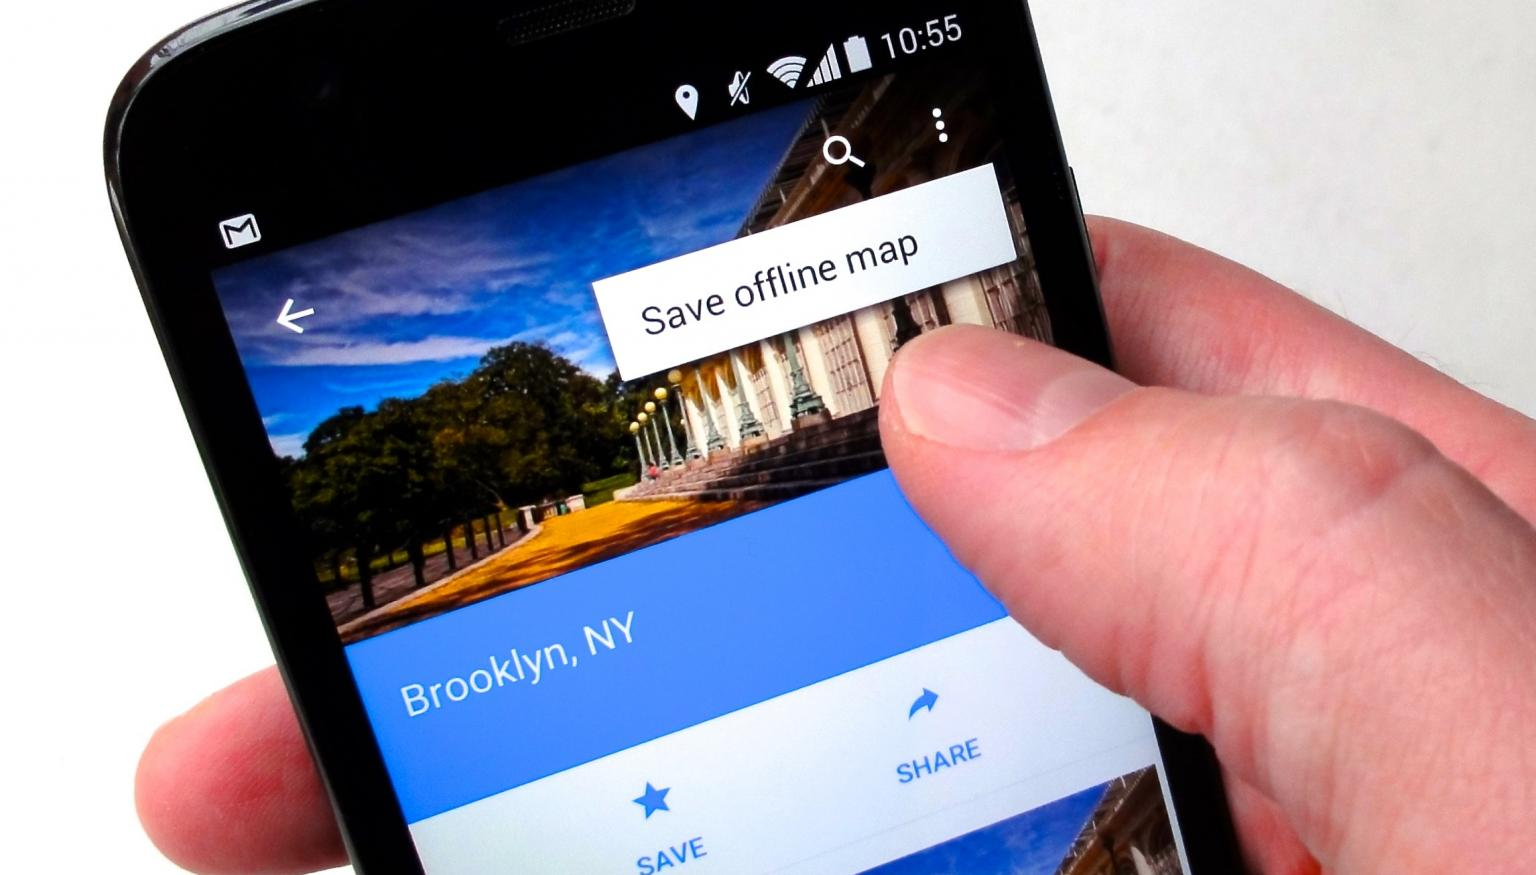 NEW FEATURE: You can use Google Maps offline!? Here's how ... on google maps 2014, google maps web, google maps de, google maps 280, google maps advertising, google maps lv, google maps cuba, google maps print, google maps desktop, google maps lt, google maps home, google maps windows, google maps android, google maps hidden, google maps error, google maps search, google maps mobile, google maps online, google maps iphone,